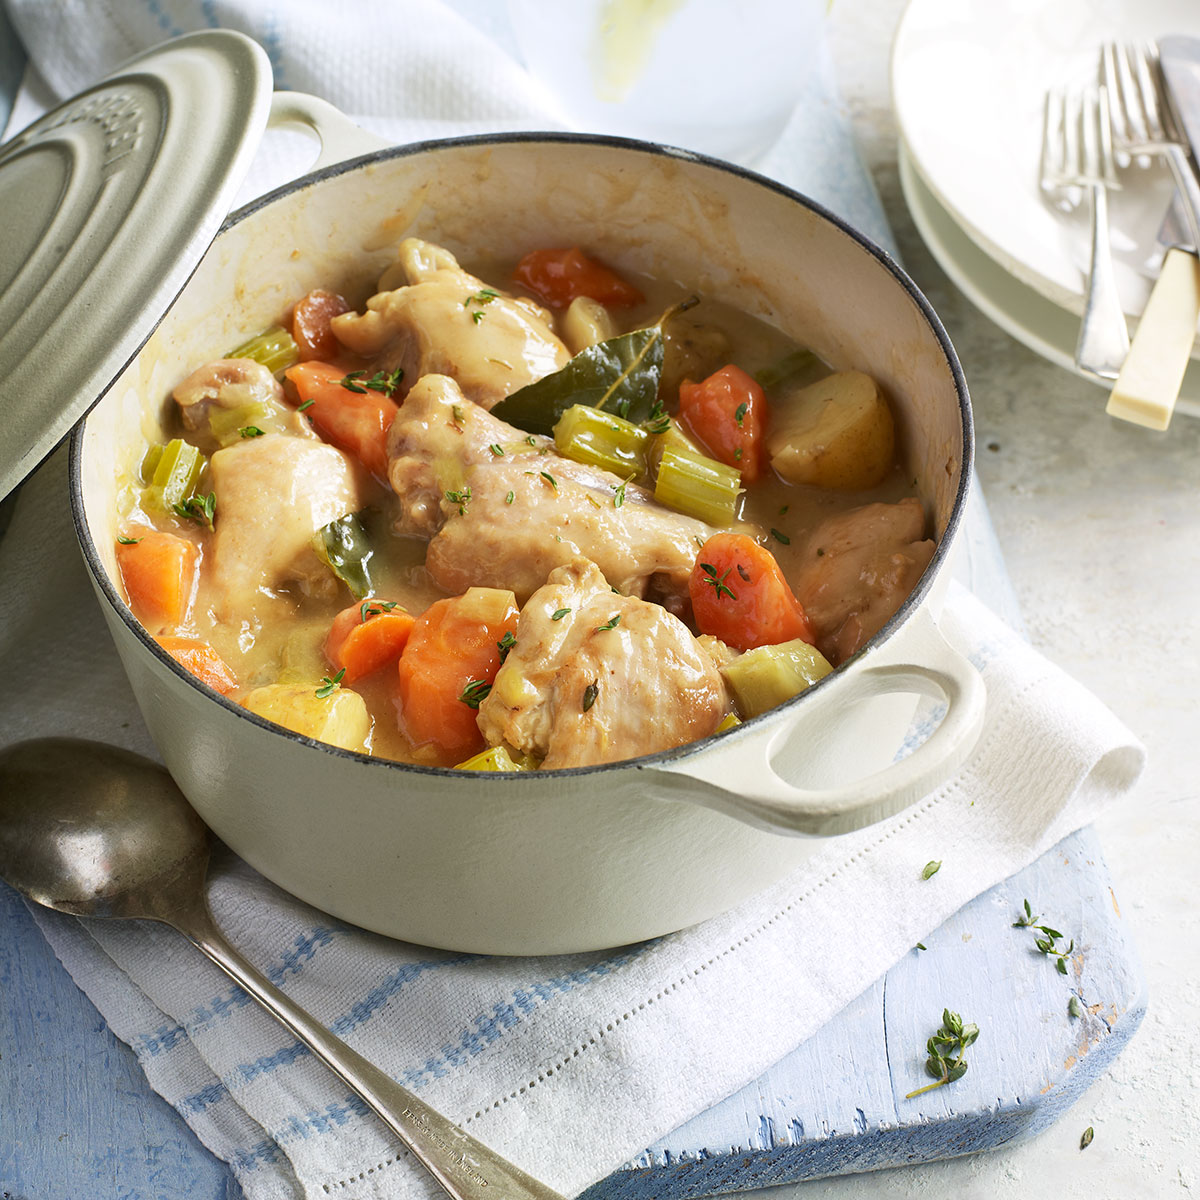 Easy onepot chicken casserole recipe bbc good food dinocrofo easy onepot chicken casserole recipe bbc good food forumfinder Image collections